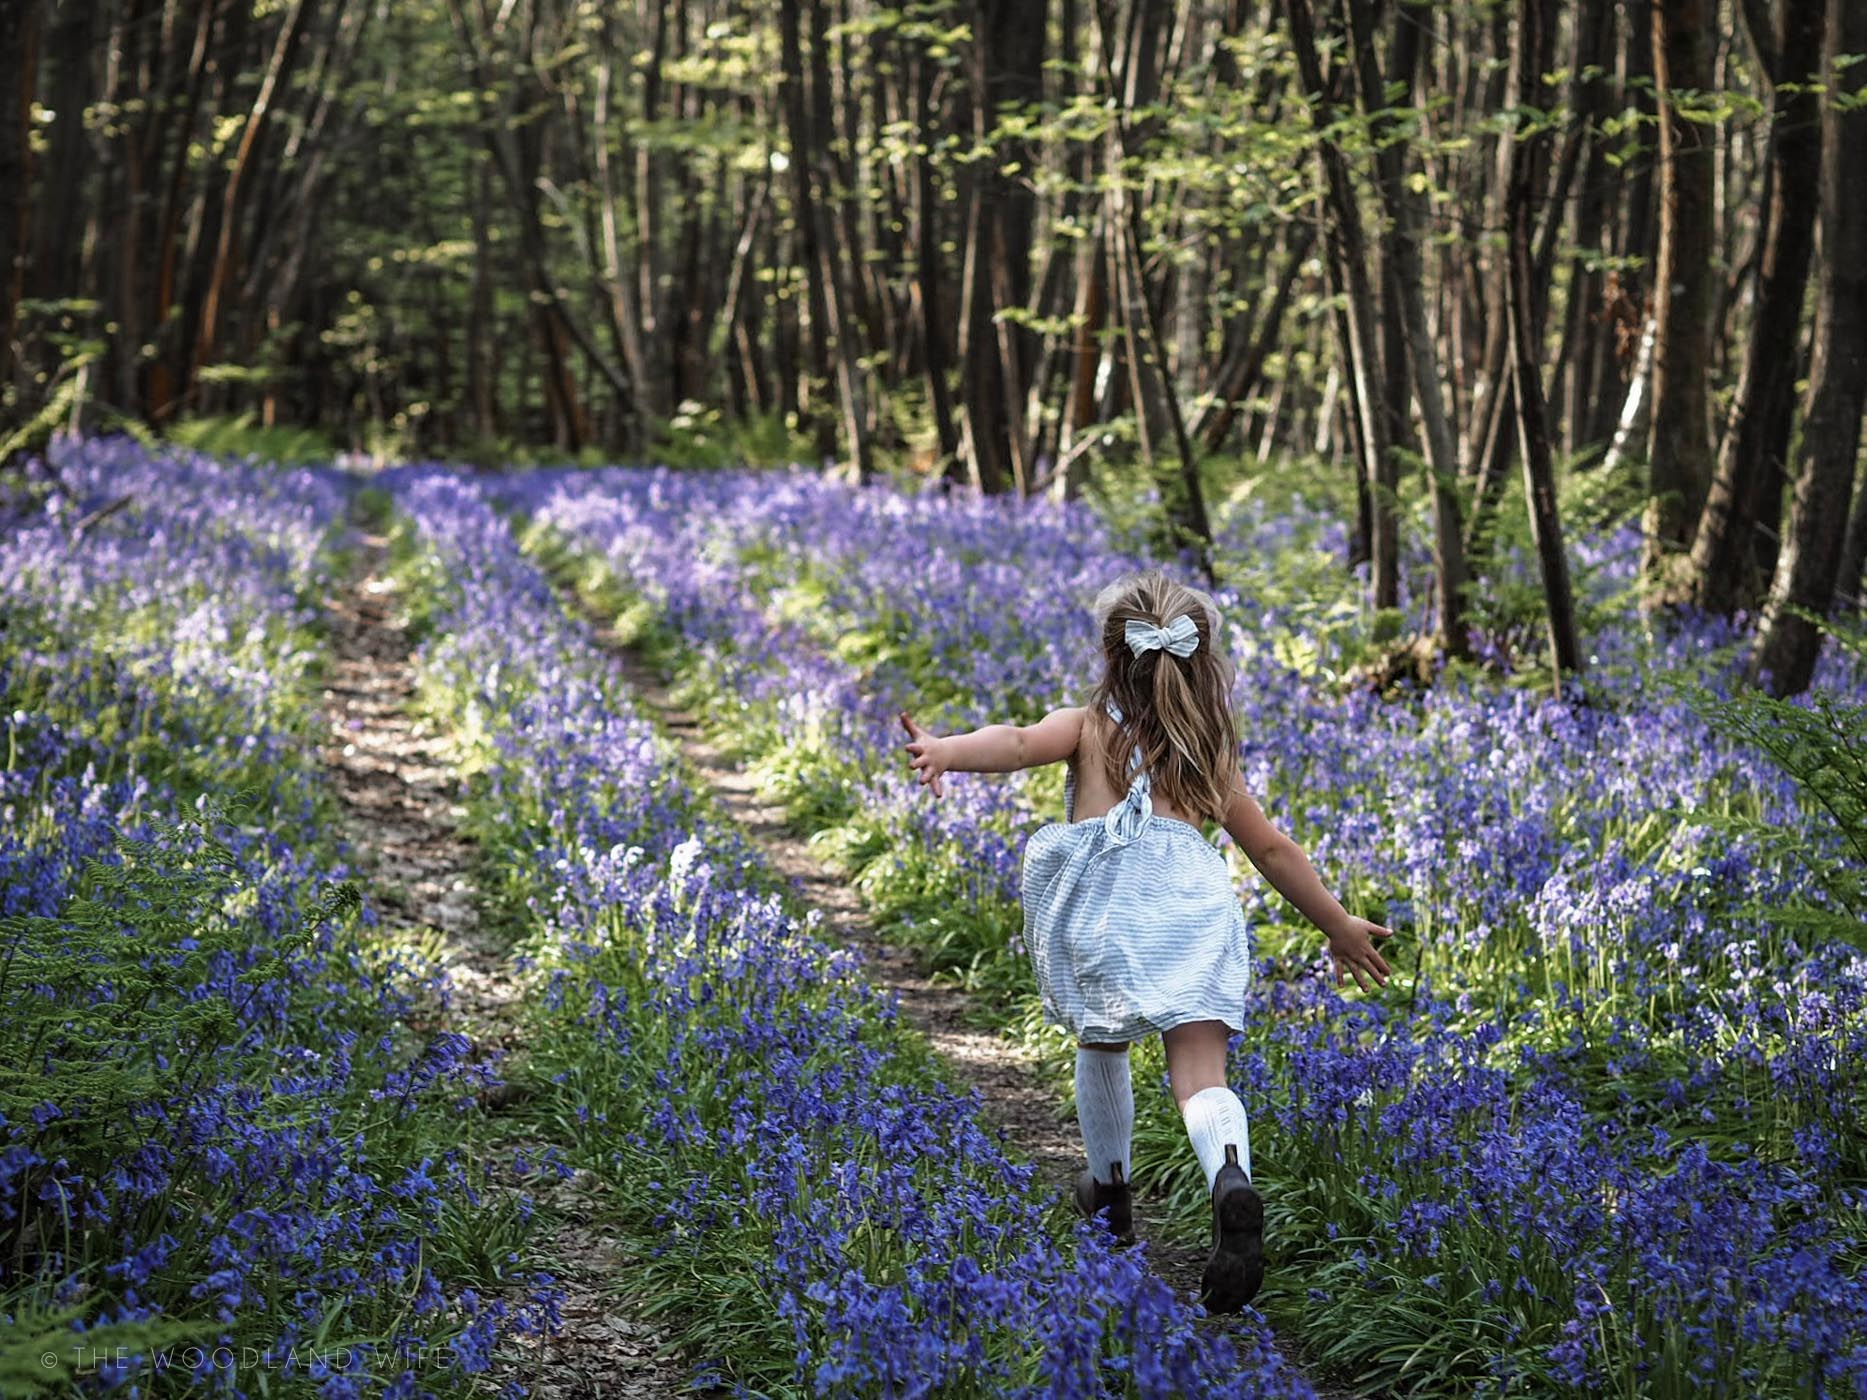 A Weekend Wander In A Blue Haze Of Bluebells The Woodland Wife